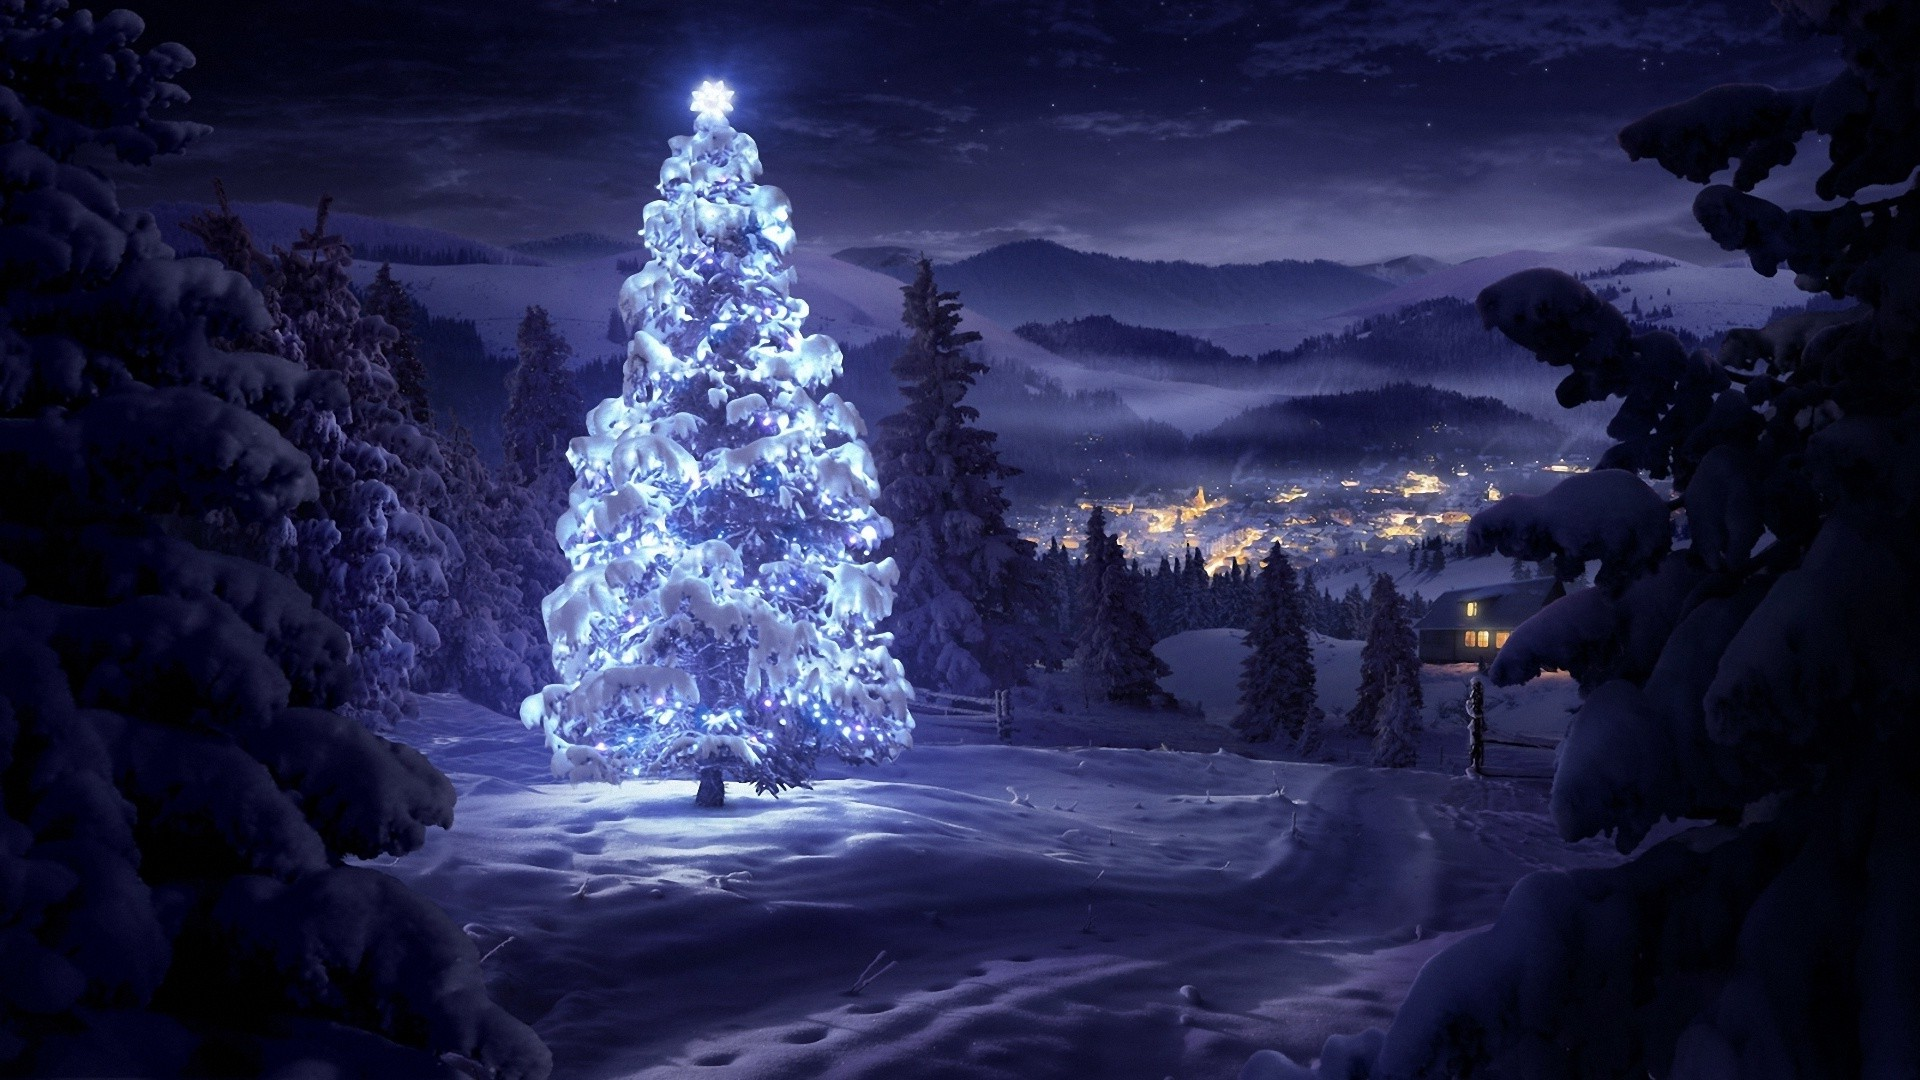 3d Christmas Wallpaper Backgrounds 2015 Christmas Night Landscape Christmas Tree Mountain